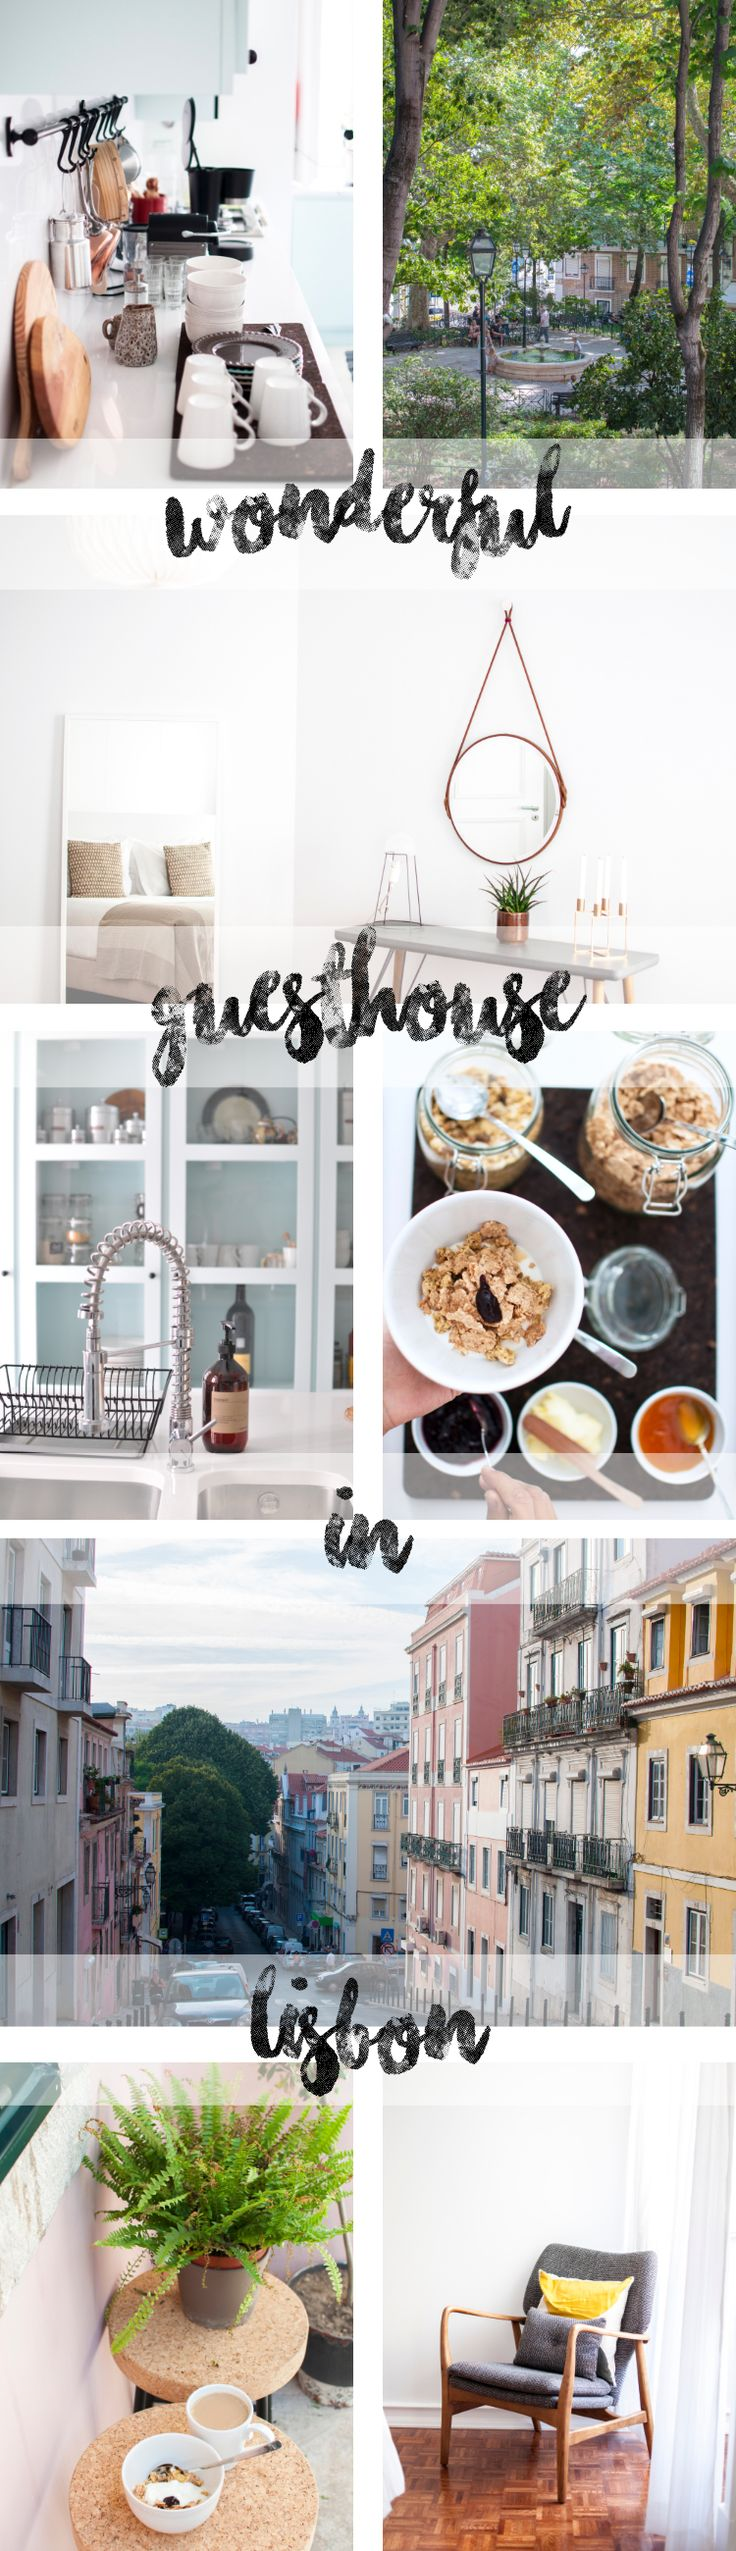 Großartige Tipps für den nächsten Lissabon-Ausflug. #wohnen idee #lissabon #portugal   >>Lisbon Hipster & Coffee Guide - our beautiful Guesthouse the Casa C'Alma near Praça das Flores